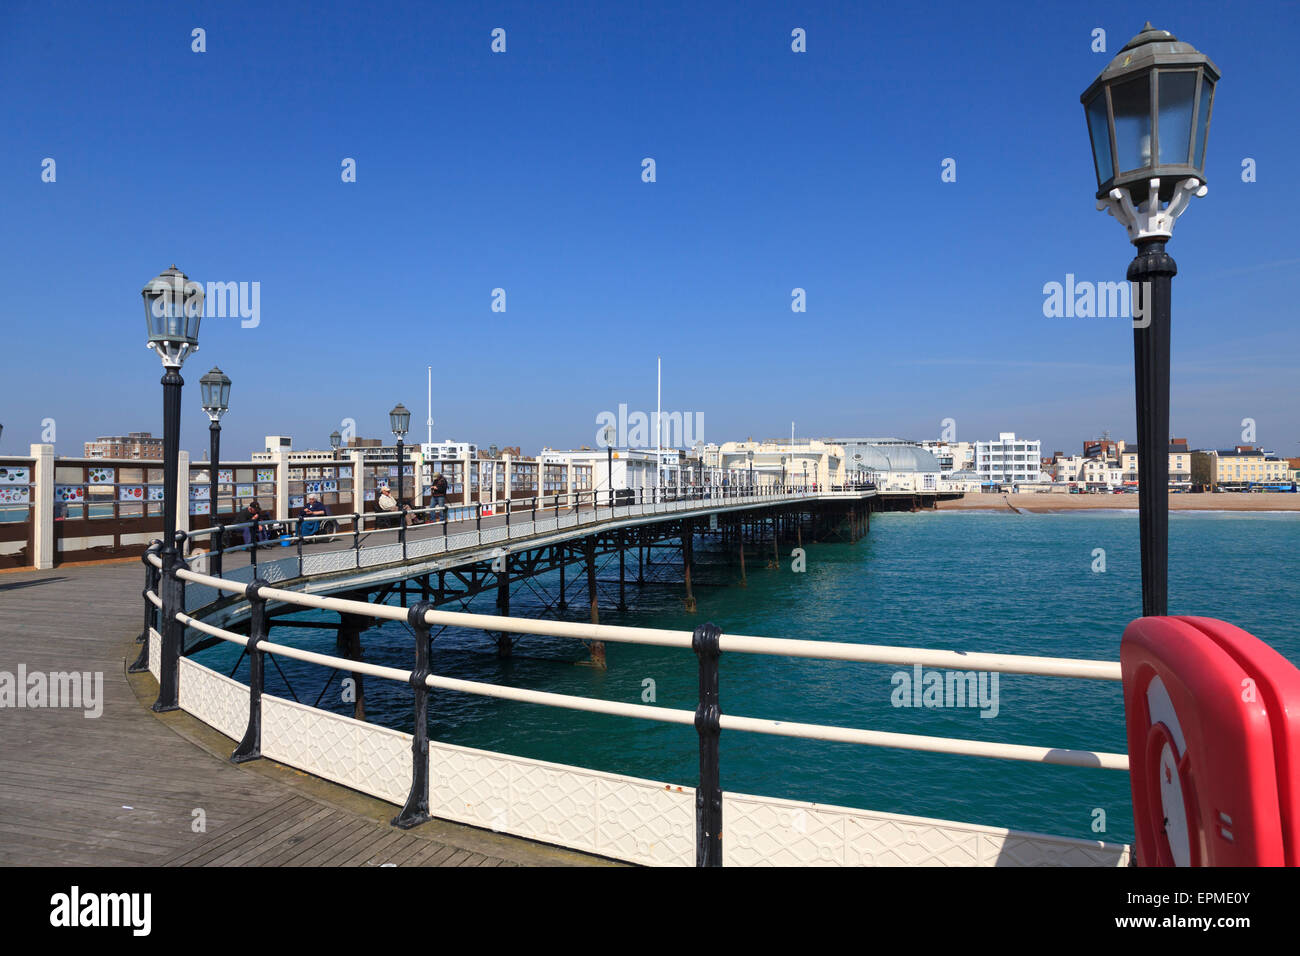 Lifebuoy cabinet and lights on Worthing pier in daylight Stock Photo